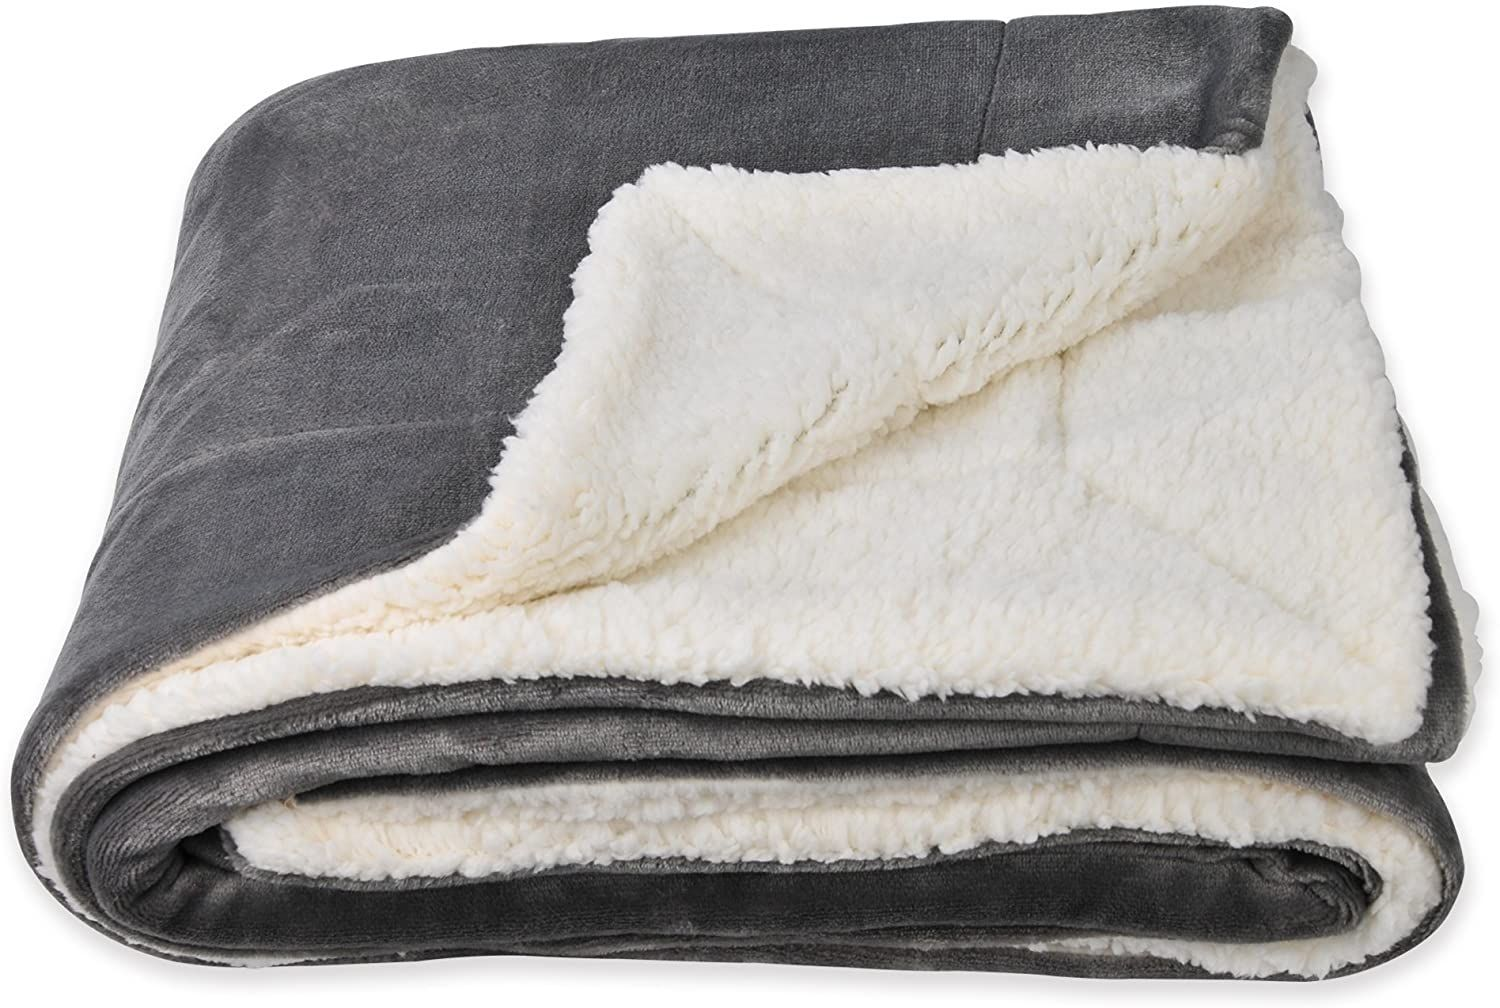 Sochow Sherpa Fleece Throw Blanket Double Sided Super Soft Luxurious Plush Blanket Throw Size Grey Plush Blanket Fleece Throw Blanket Twin Blanket What is a sherpa blanket